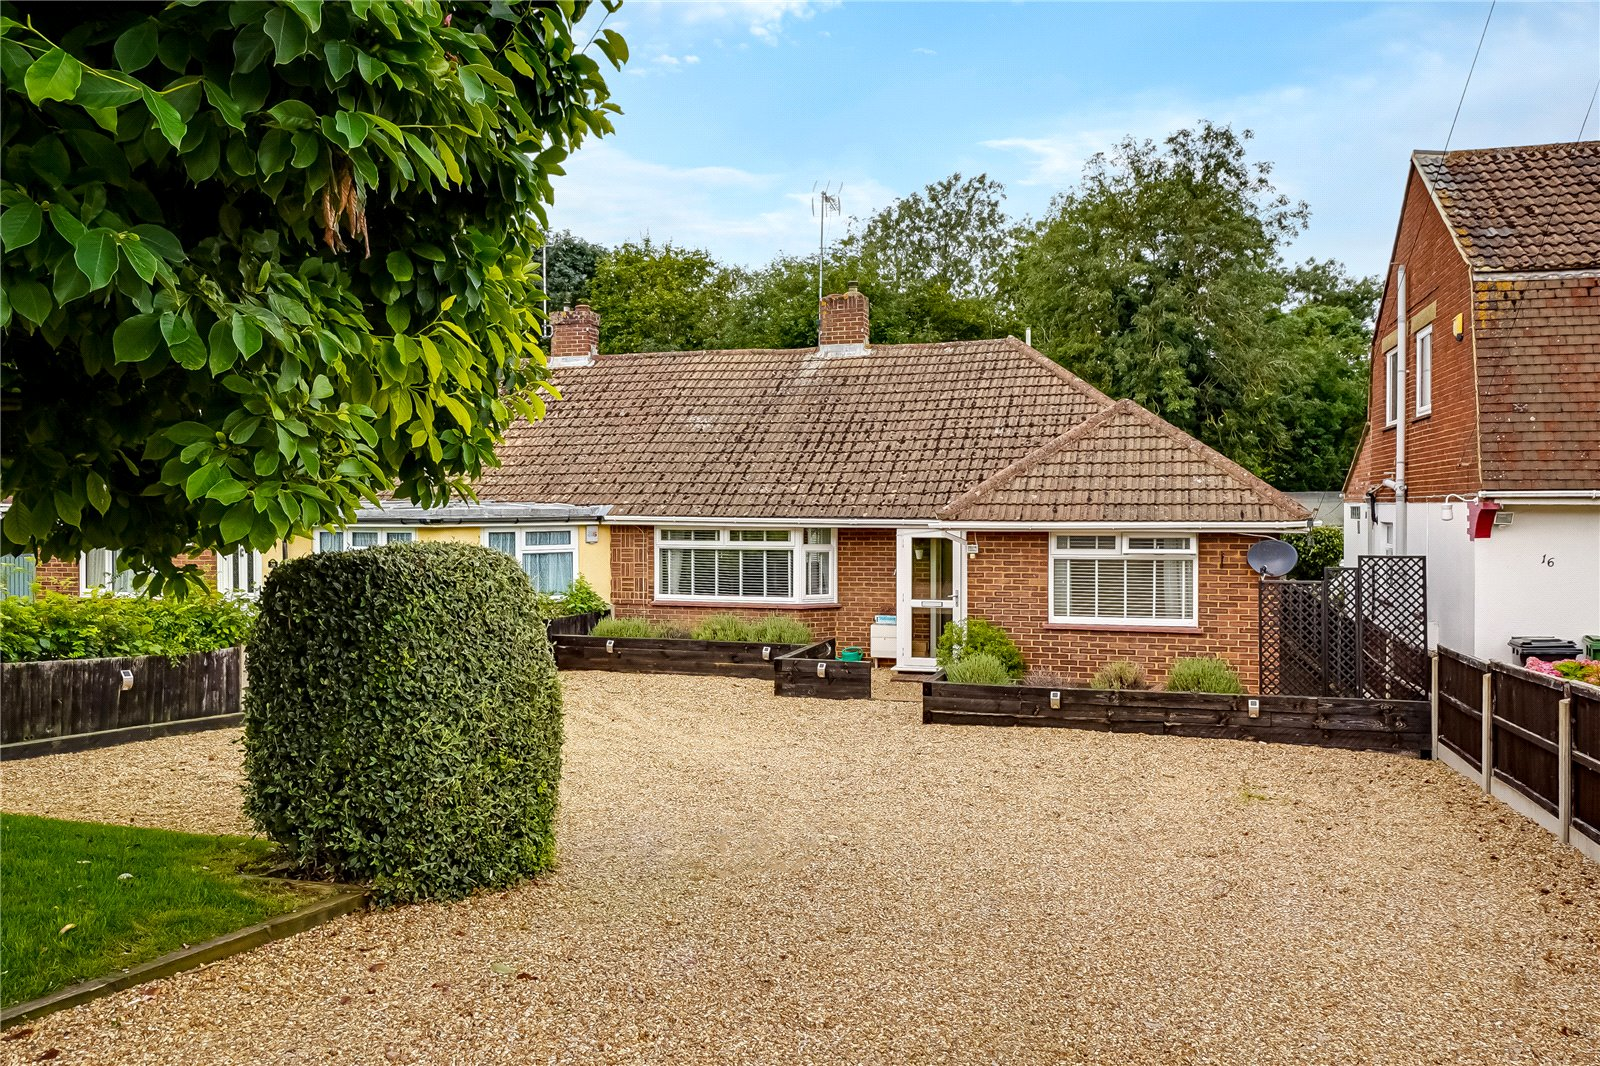 3 bed bungalow for sale in Bannister Road, Penenden Heath - Property Image 1